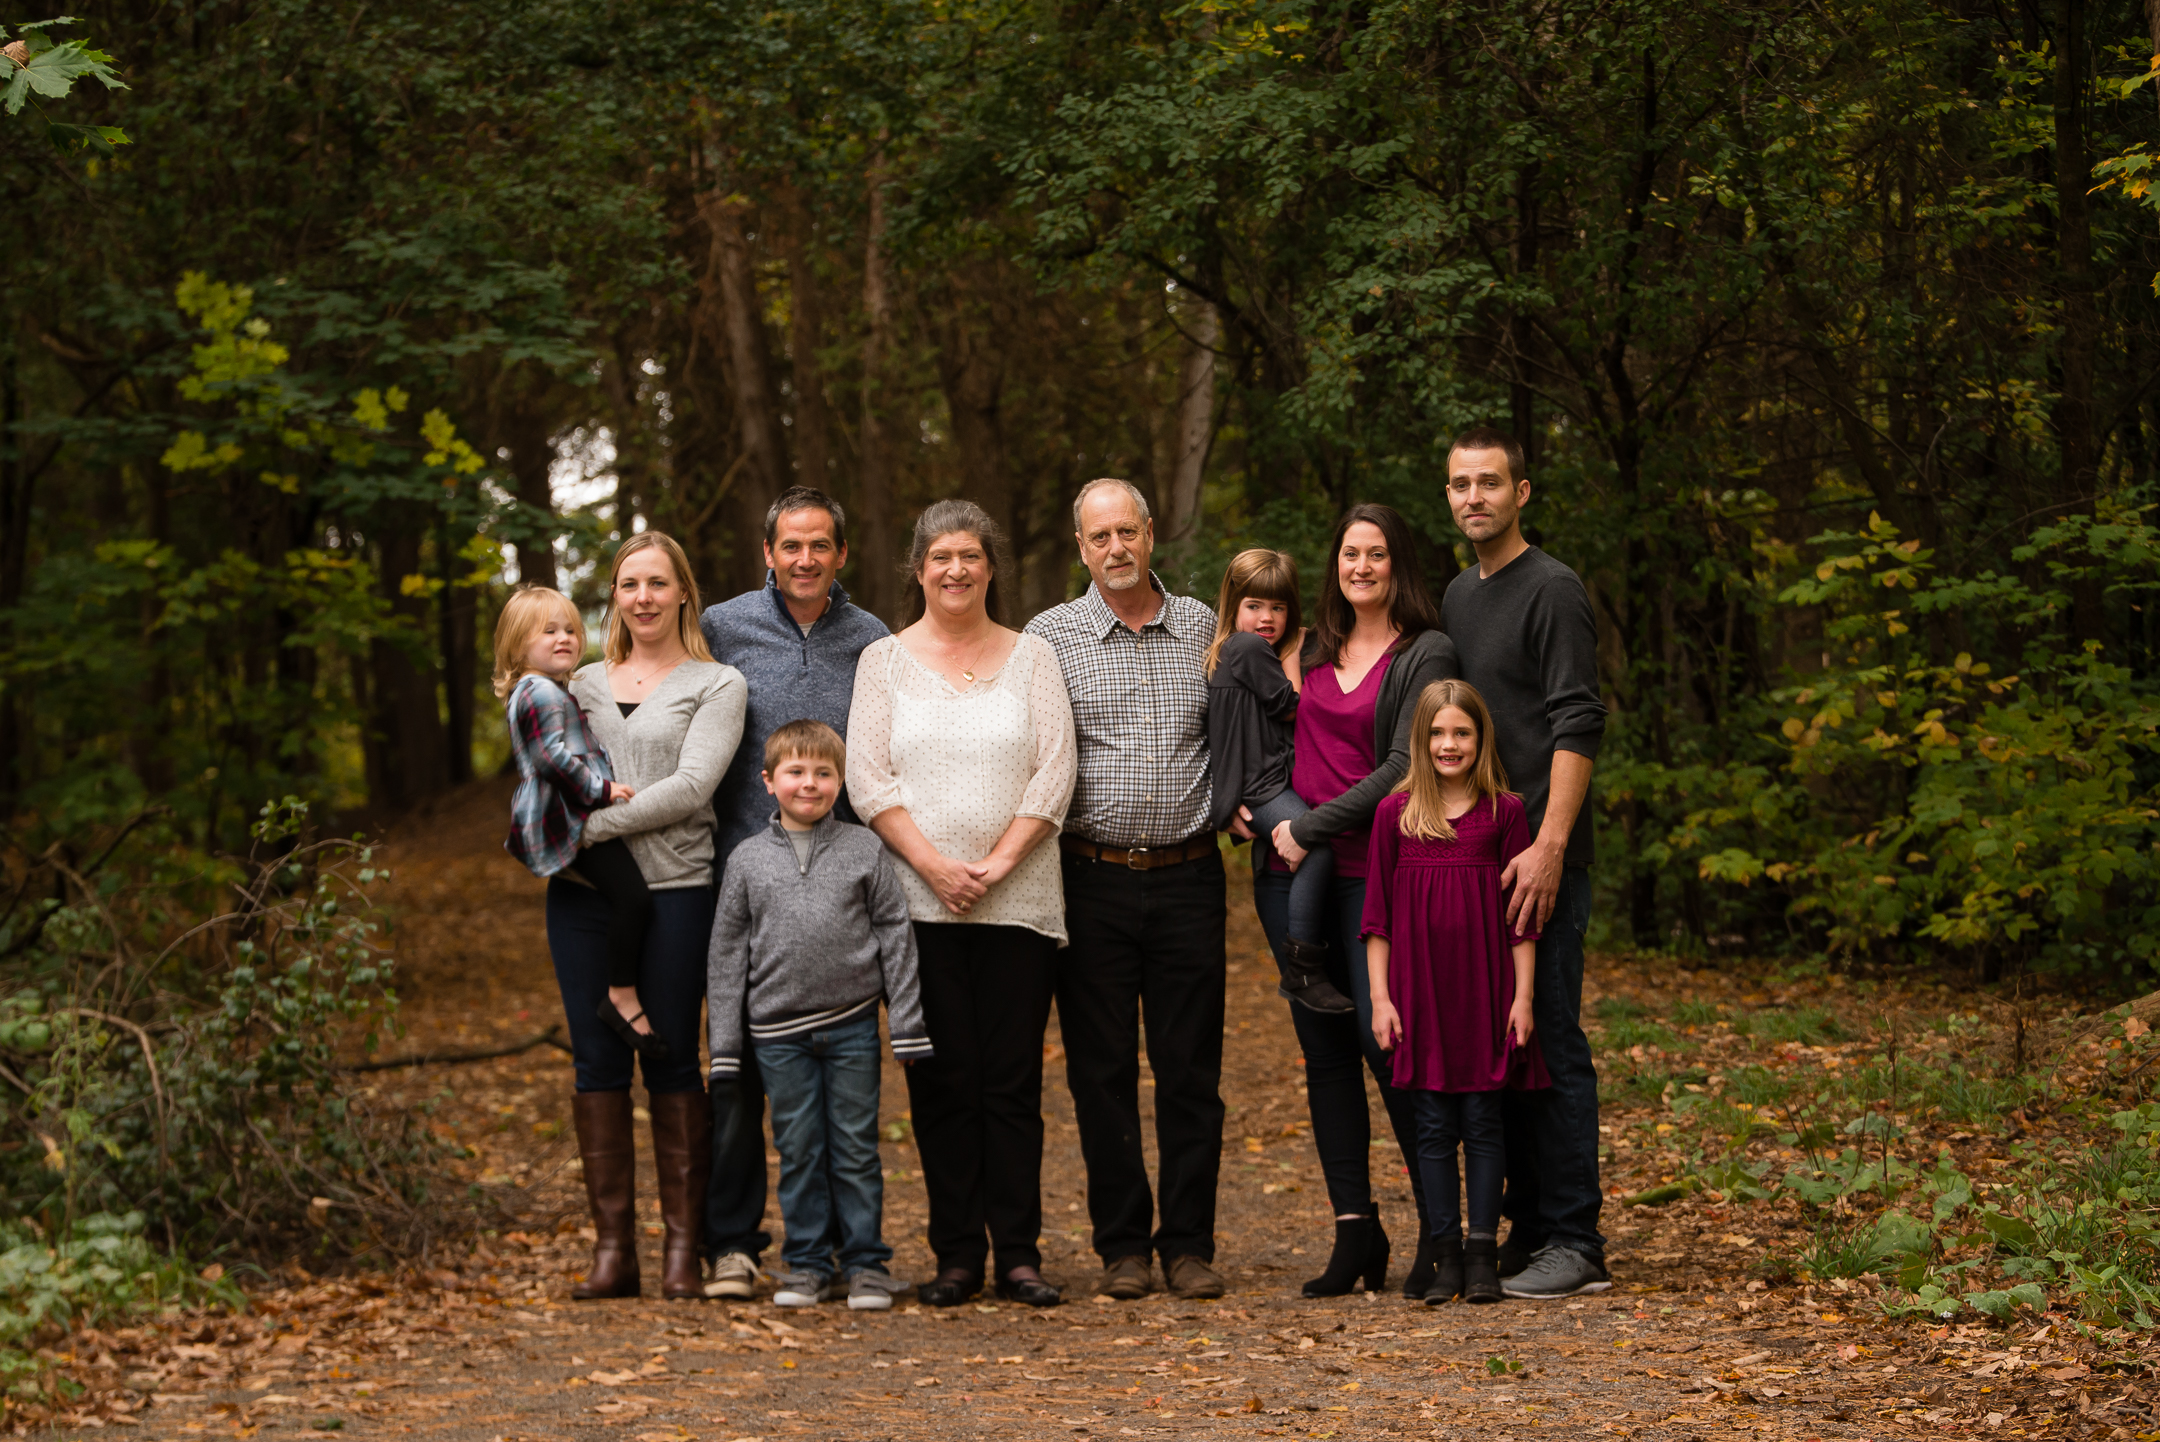 Naomi Lucienne Photography - Extended Family - 171007115.jpg